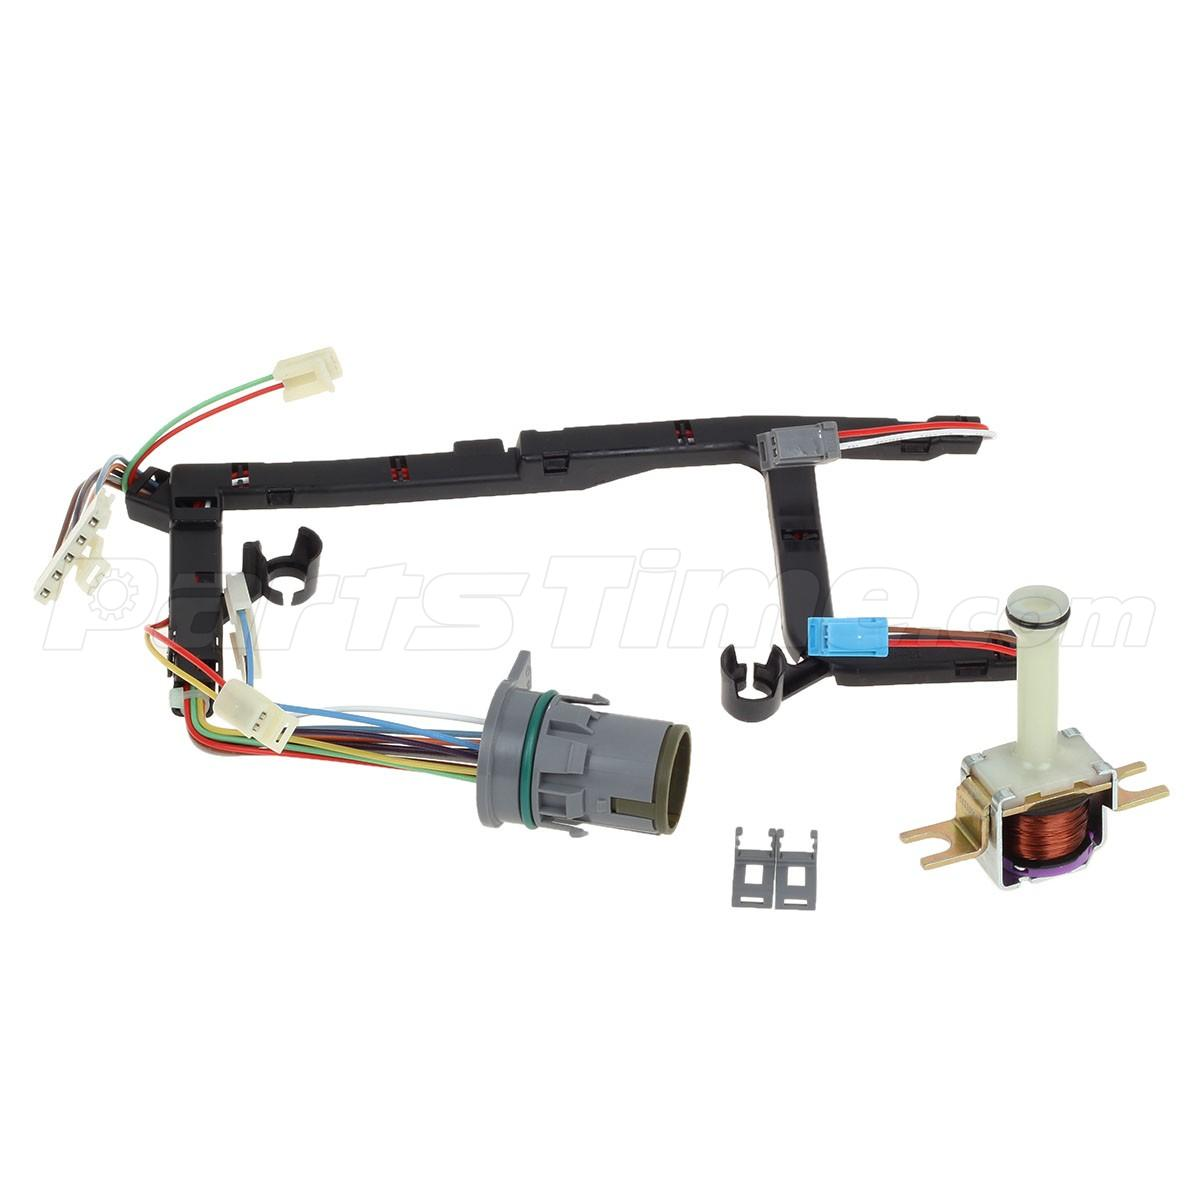 142072 8?p=ZGVhbGNsaWNr&s=t&rn=9208694 transmission 4l60e tcc look up solenoid with internal wire harness 4l60e wiring harness at readyjetset.co